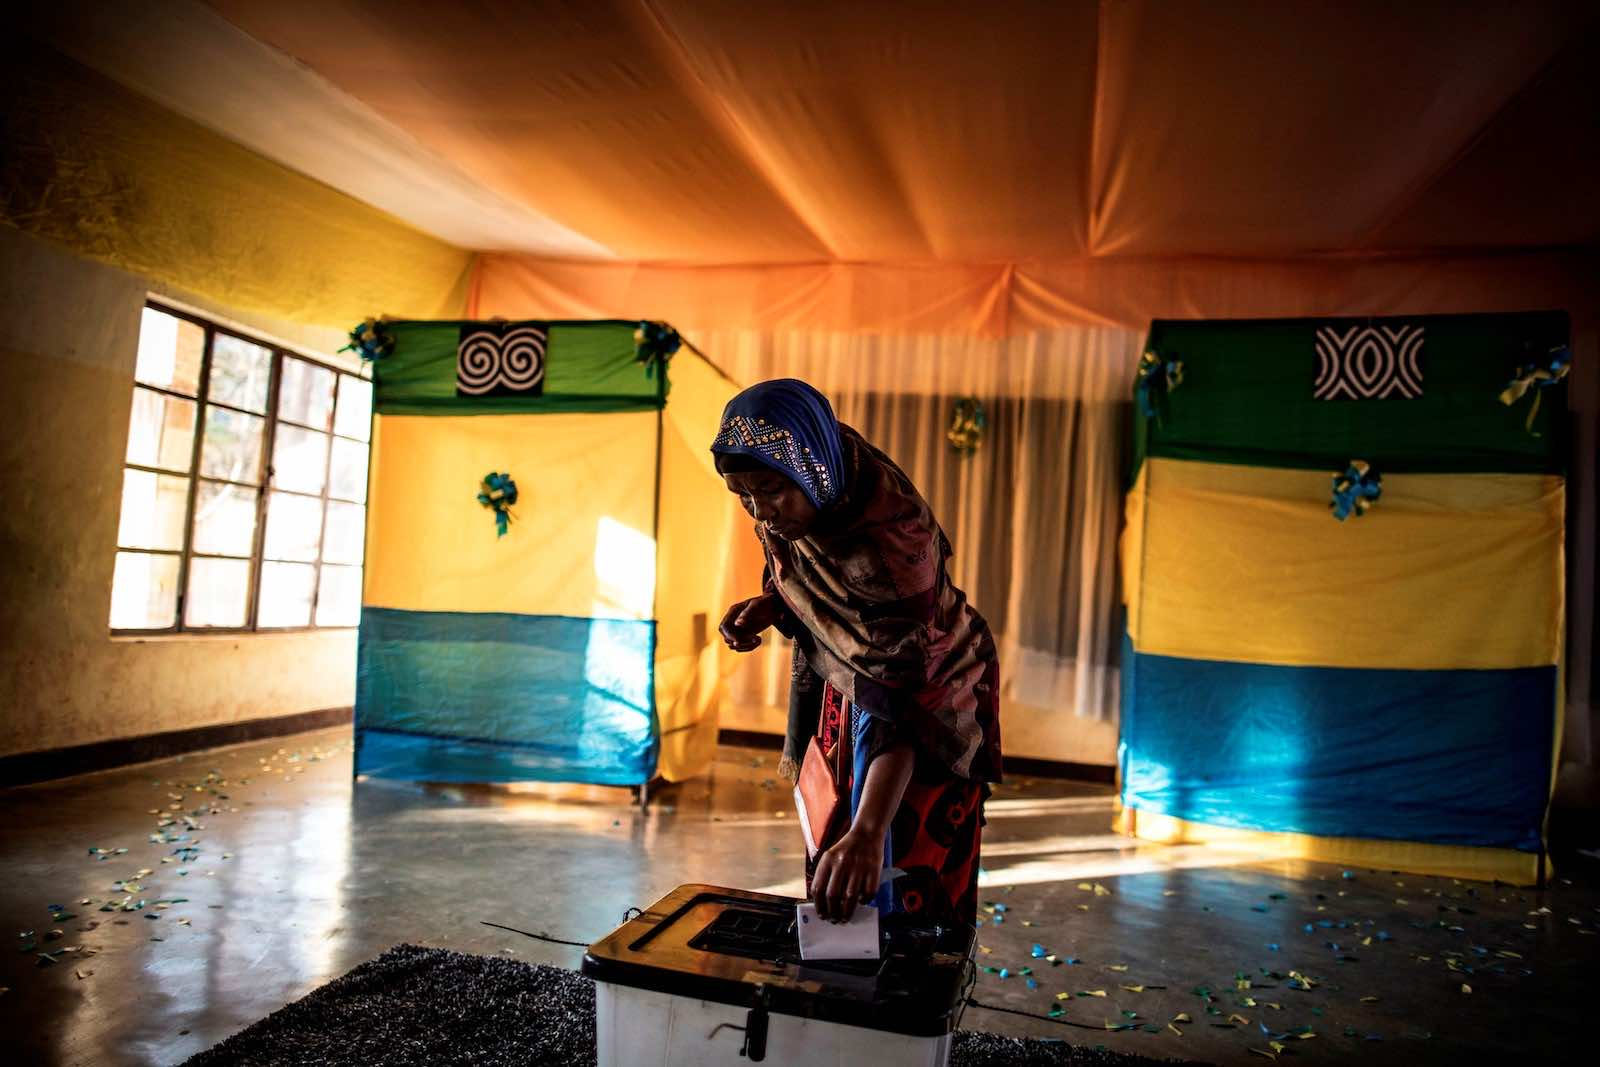 A woman casts her vote at a polling station in Kigali on 4 August 2017 (Marco Longari/AFP via Getty Images)